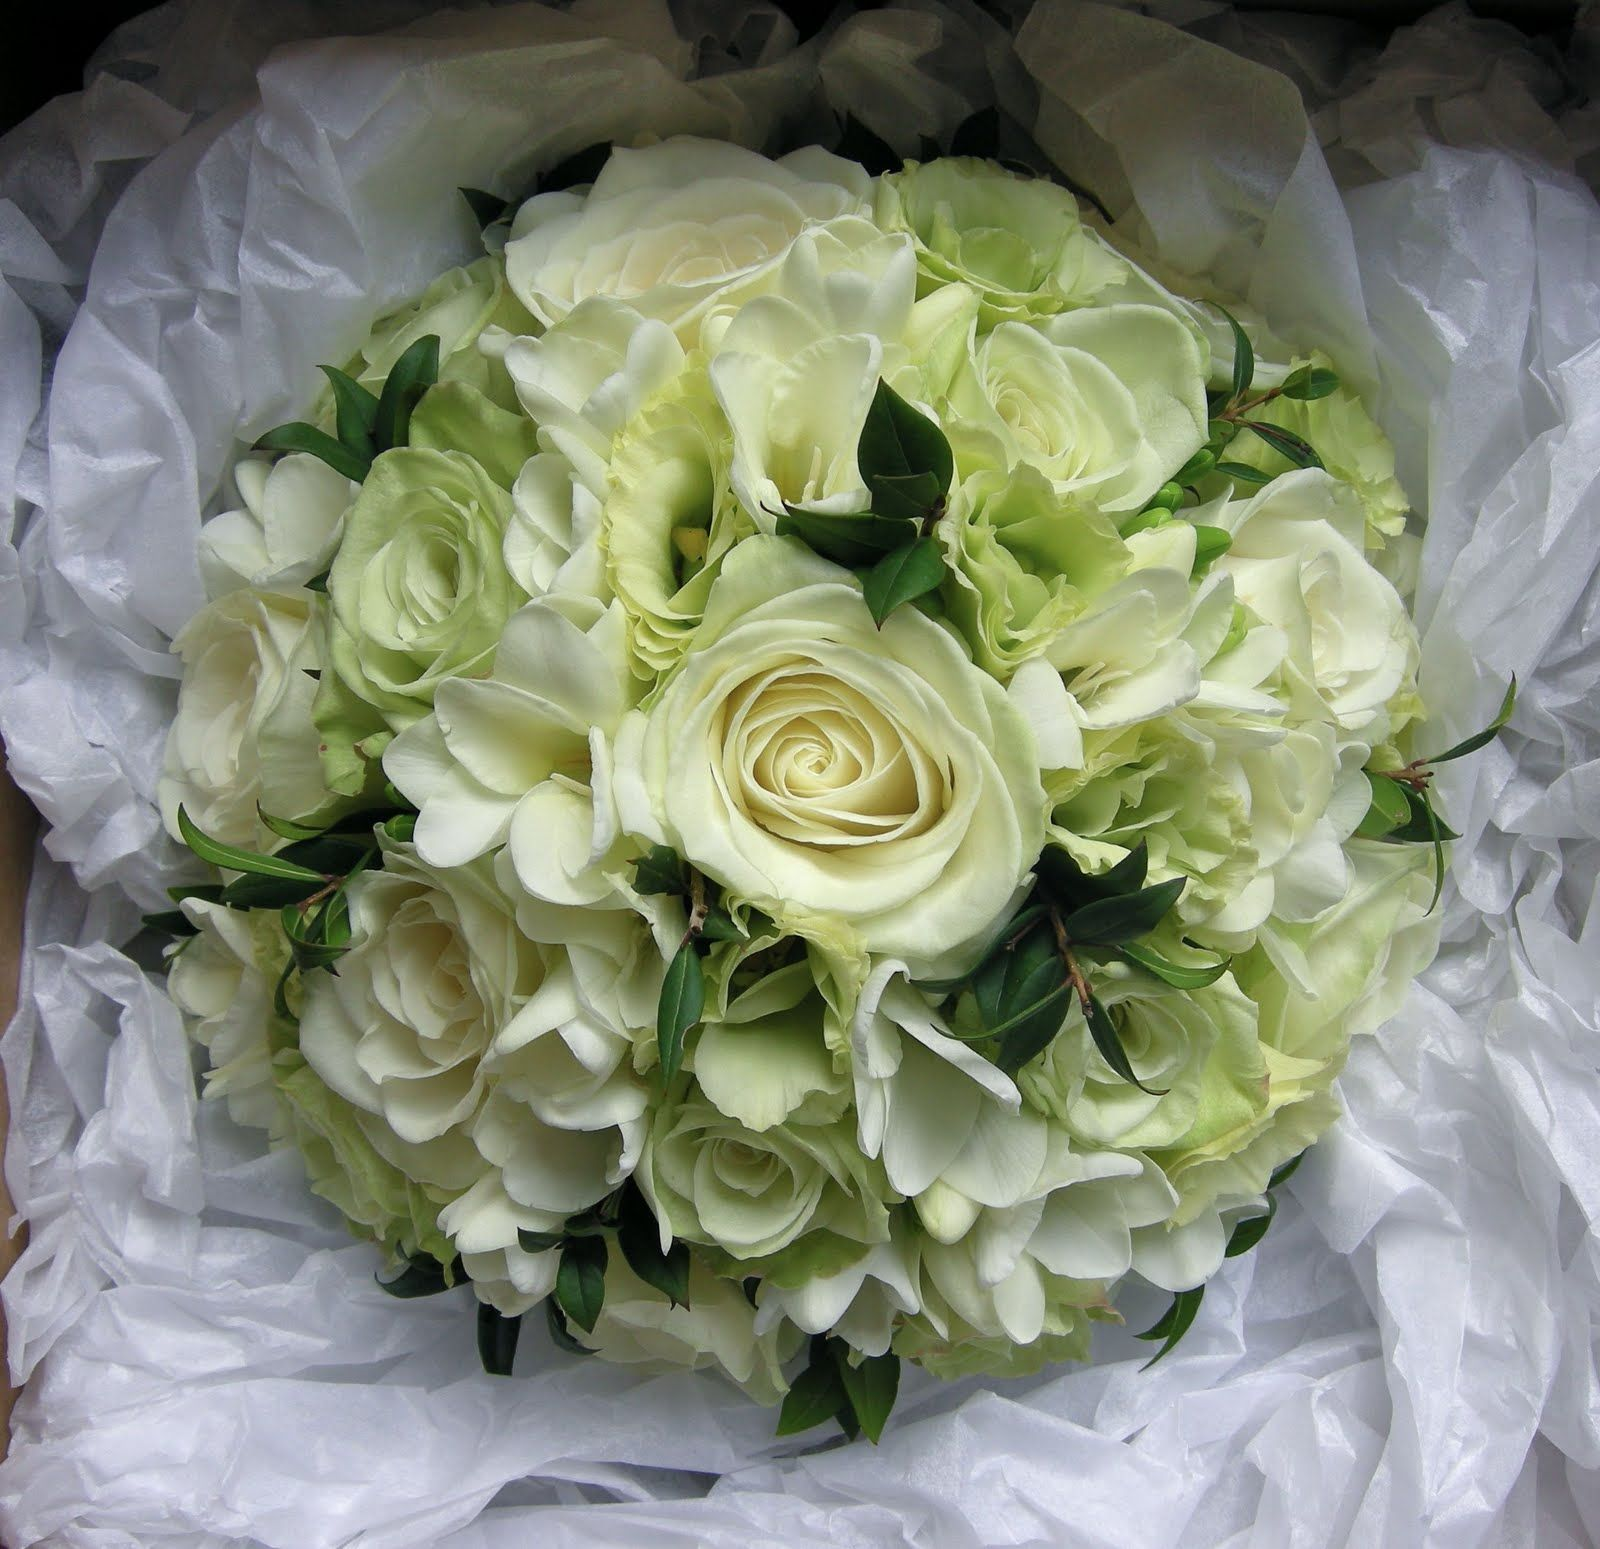 ivory bridal bouquet pictures wedding flowers blog charlotte 39 s wedding flowers classic green. Black Bedroom Furniture Sets. Home Design Ideas